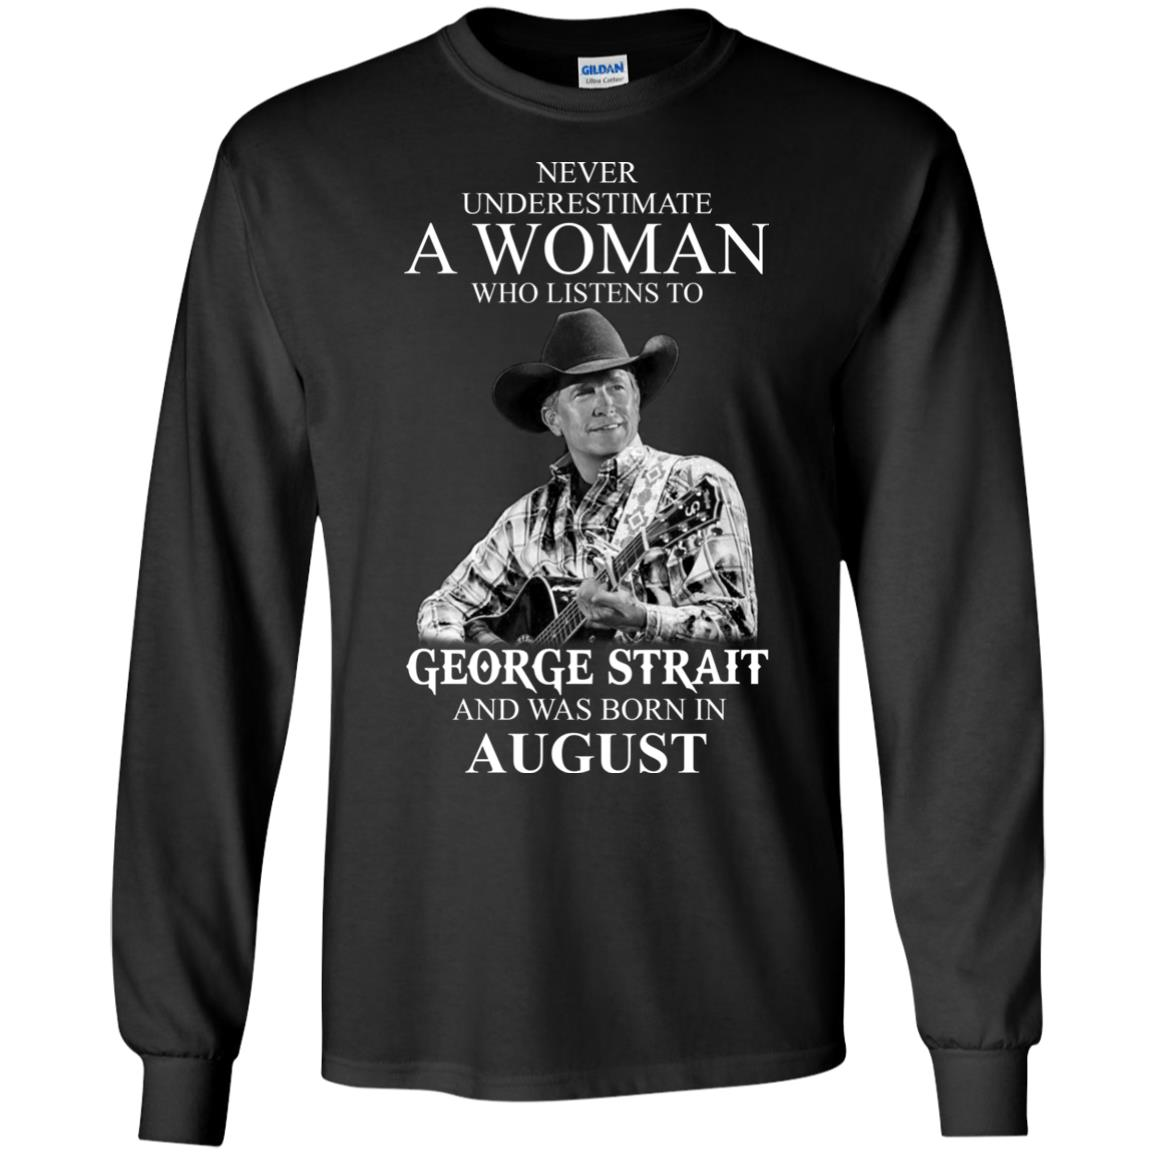 image 388 - Never Underestimate A Woman Who Listens To George Strait And Was Born In August shirt